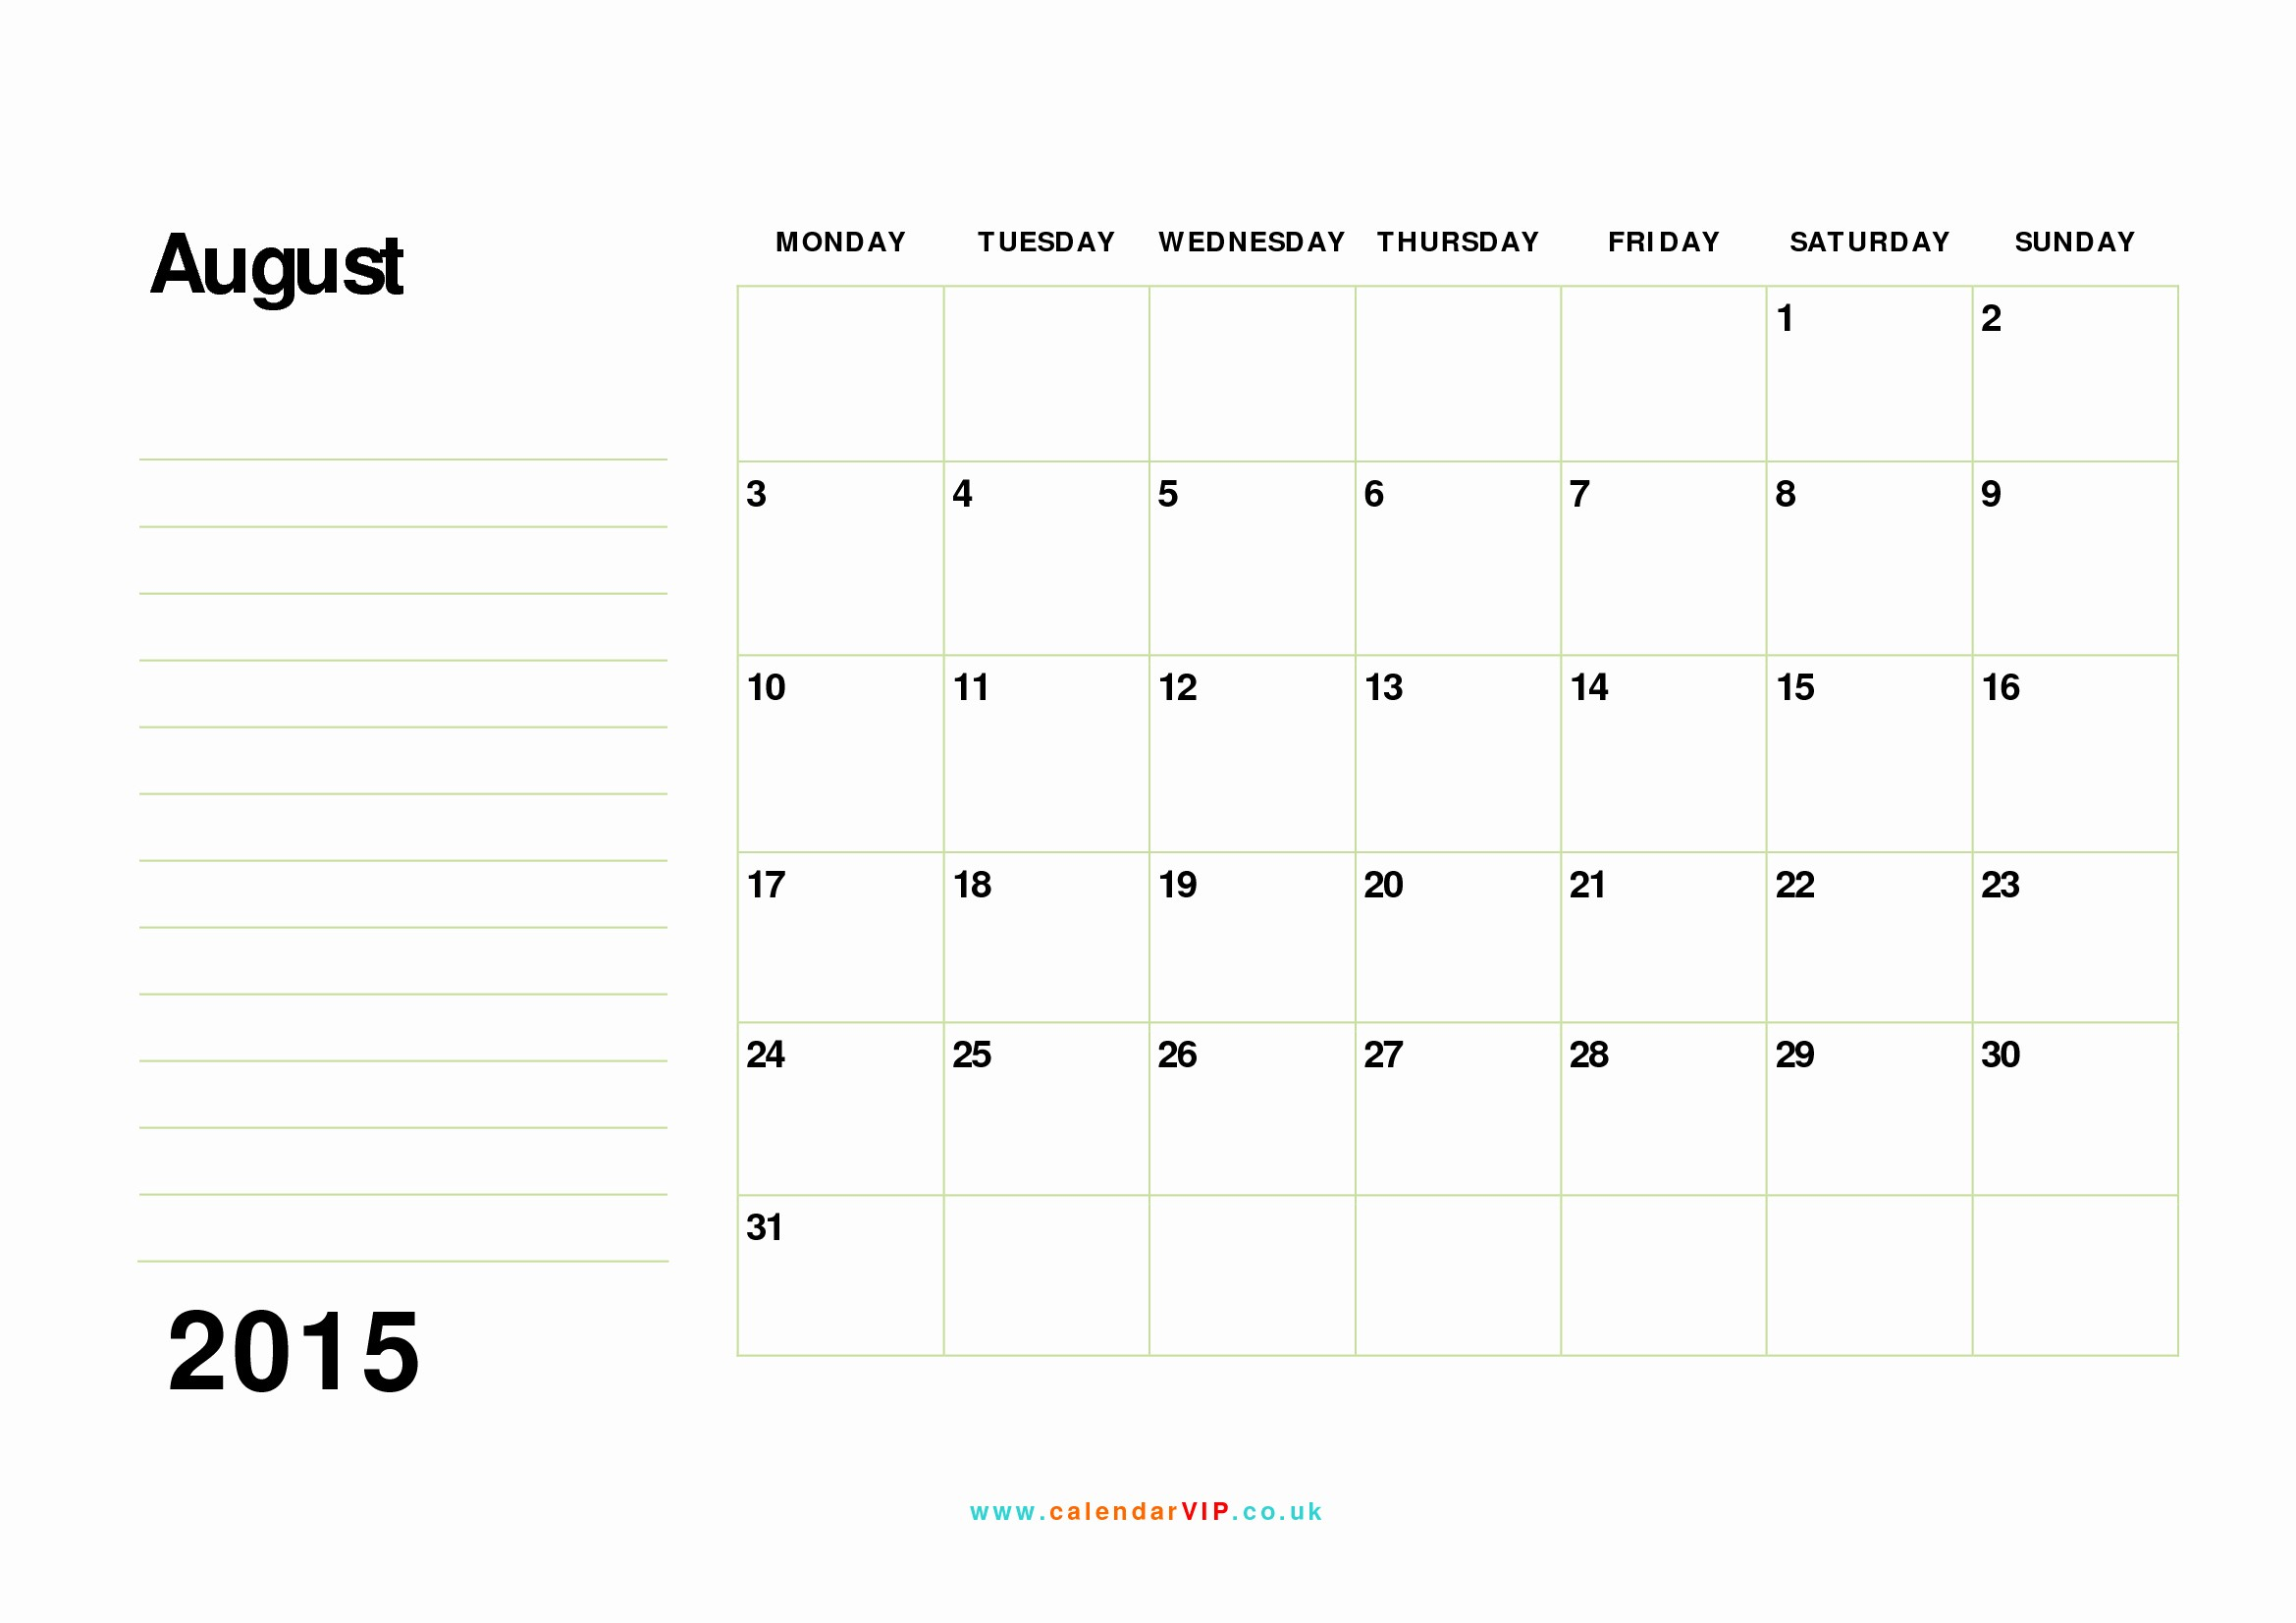 Free Monthly Calendar Templates 2015 Luxury August 2015 Calendar Free Monthly Calendar Templates for Uk